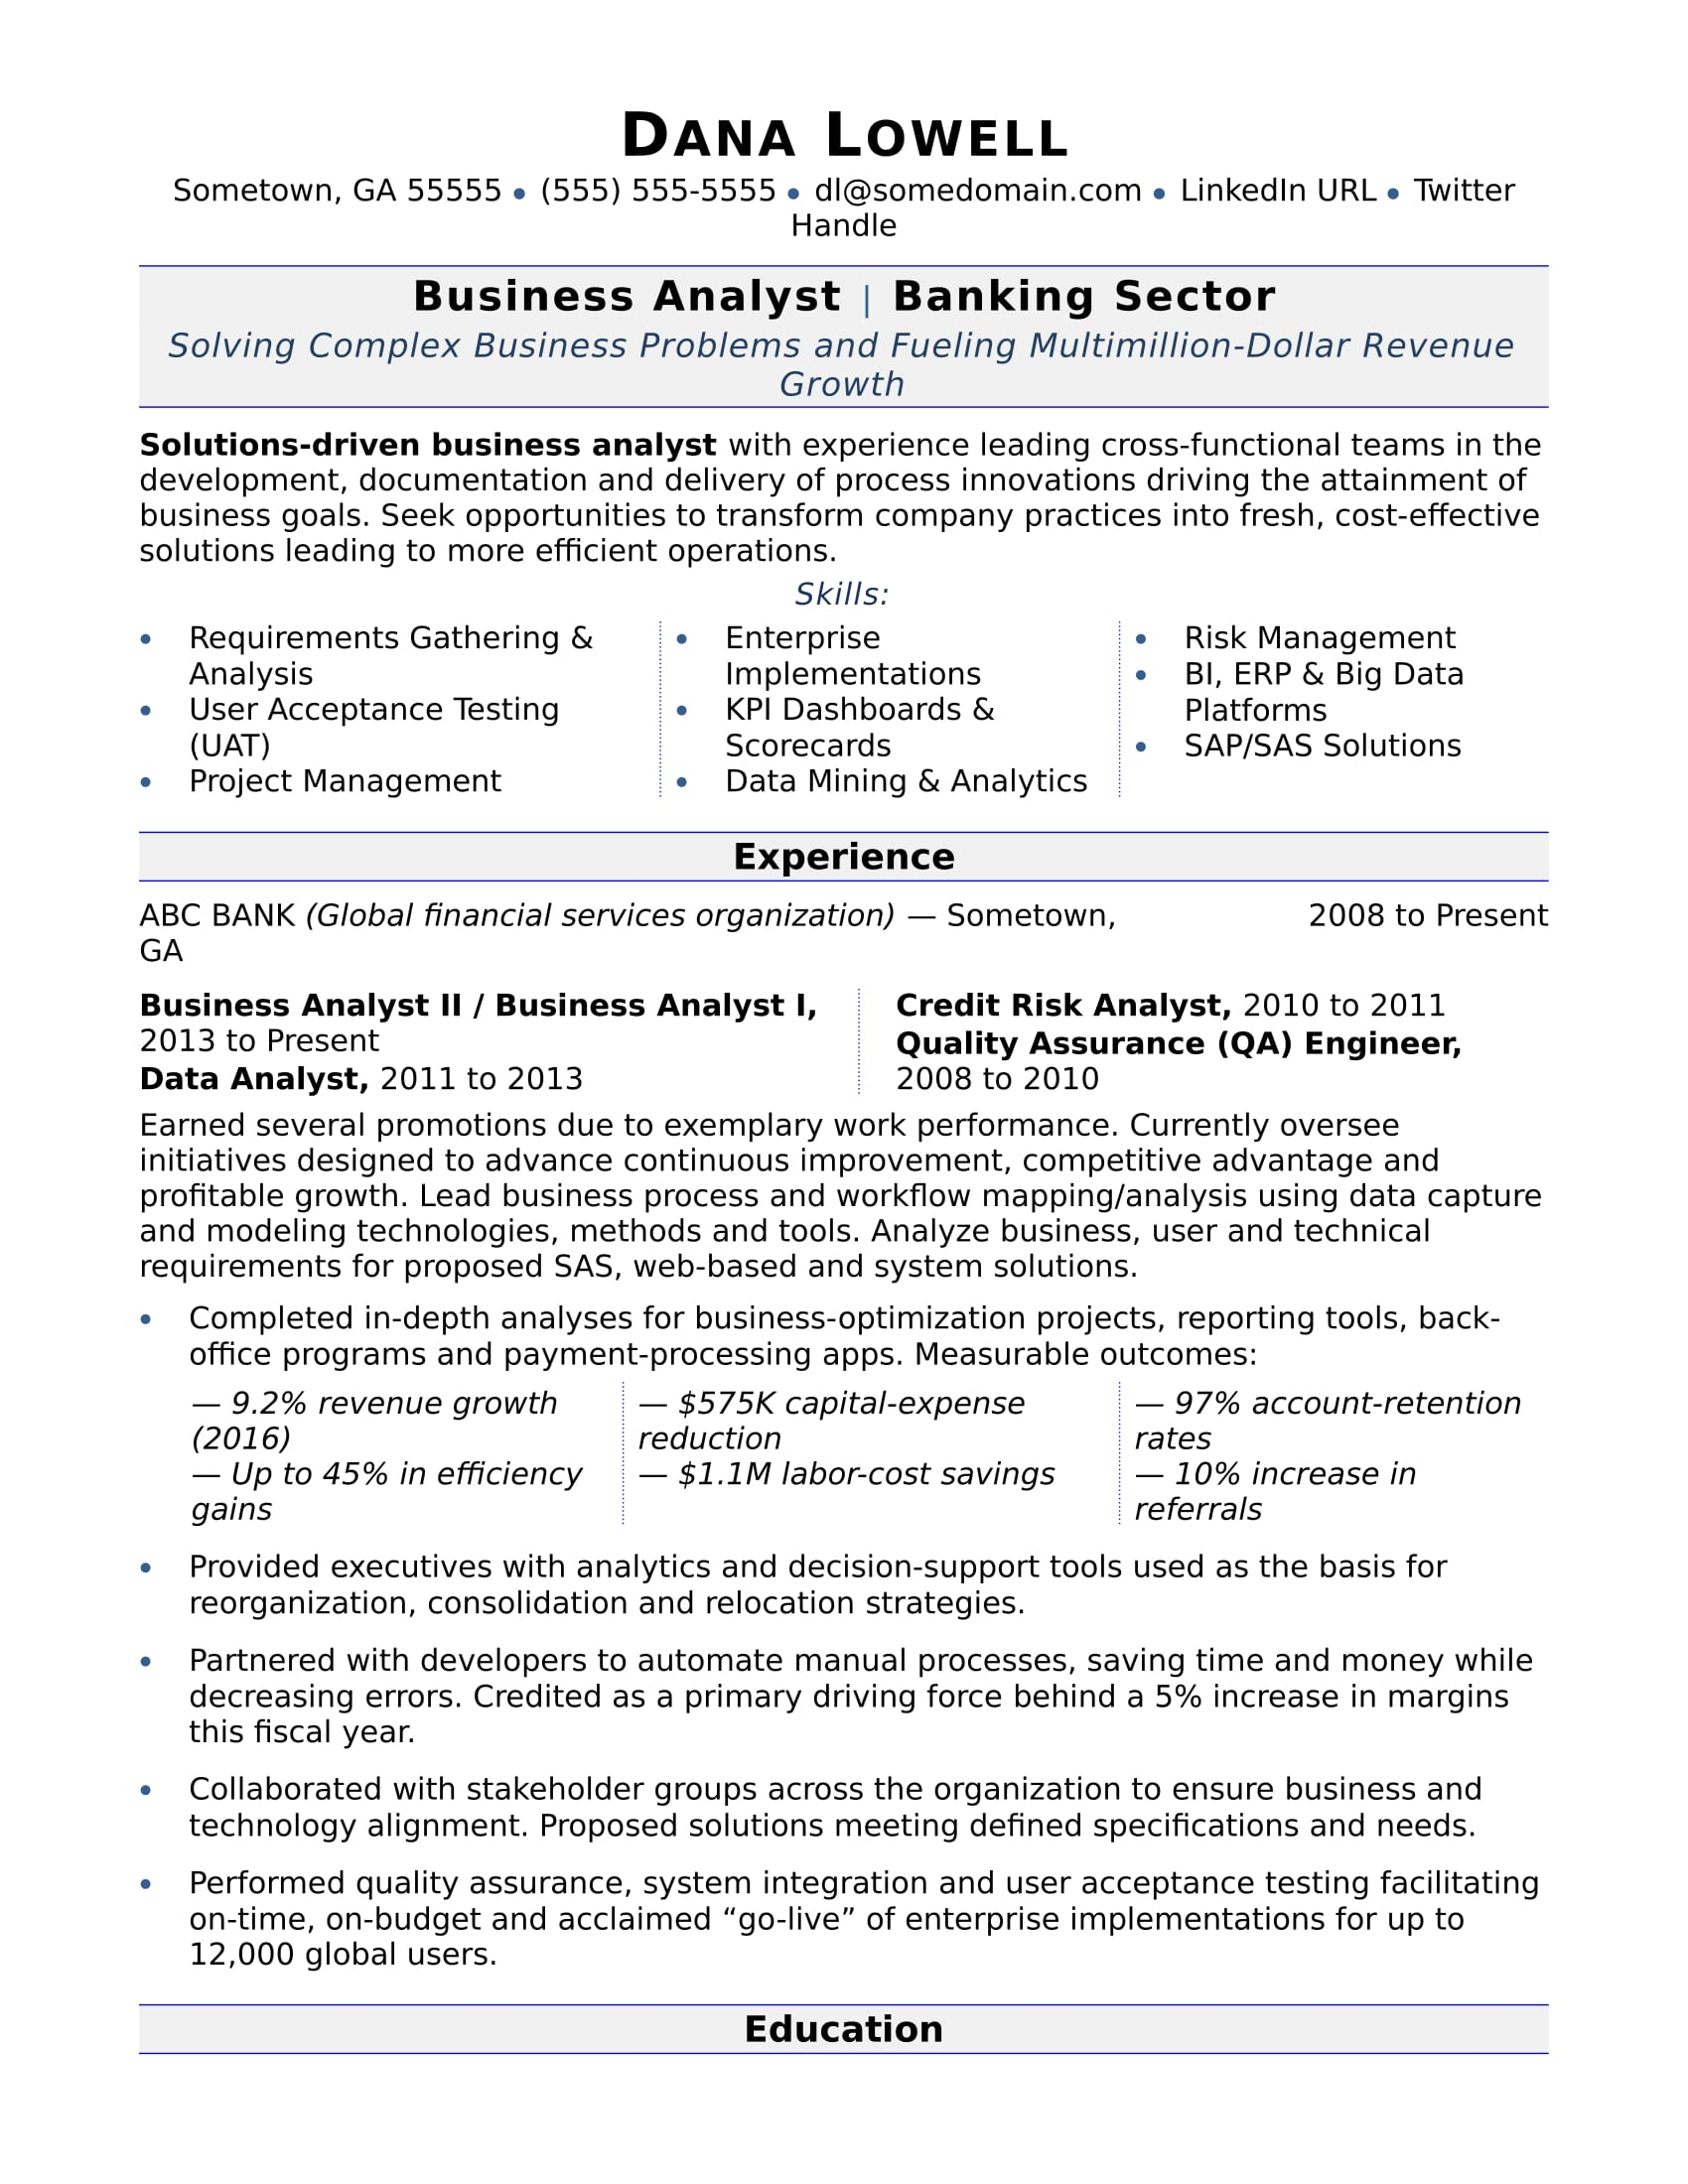 Business analyst resume sample monster business analyst resume sample accmission Gallery